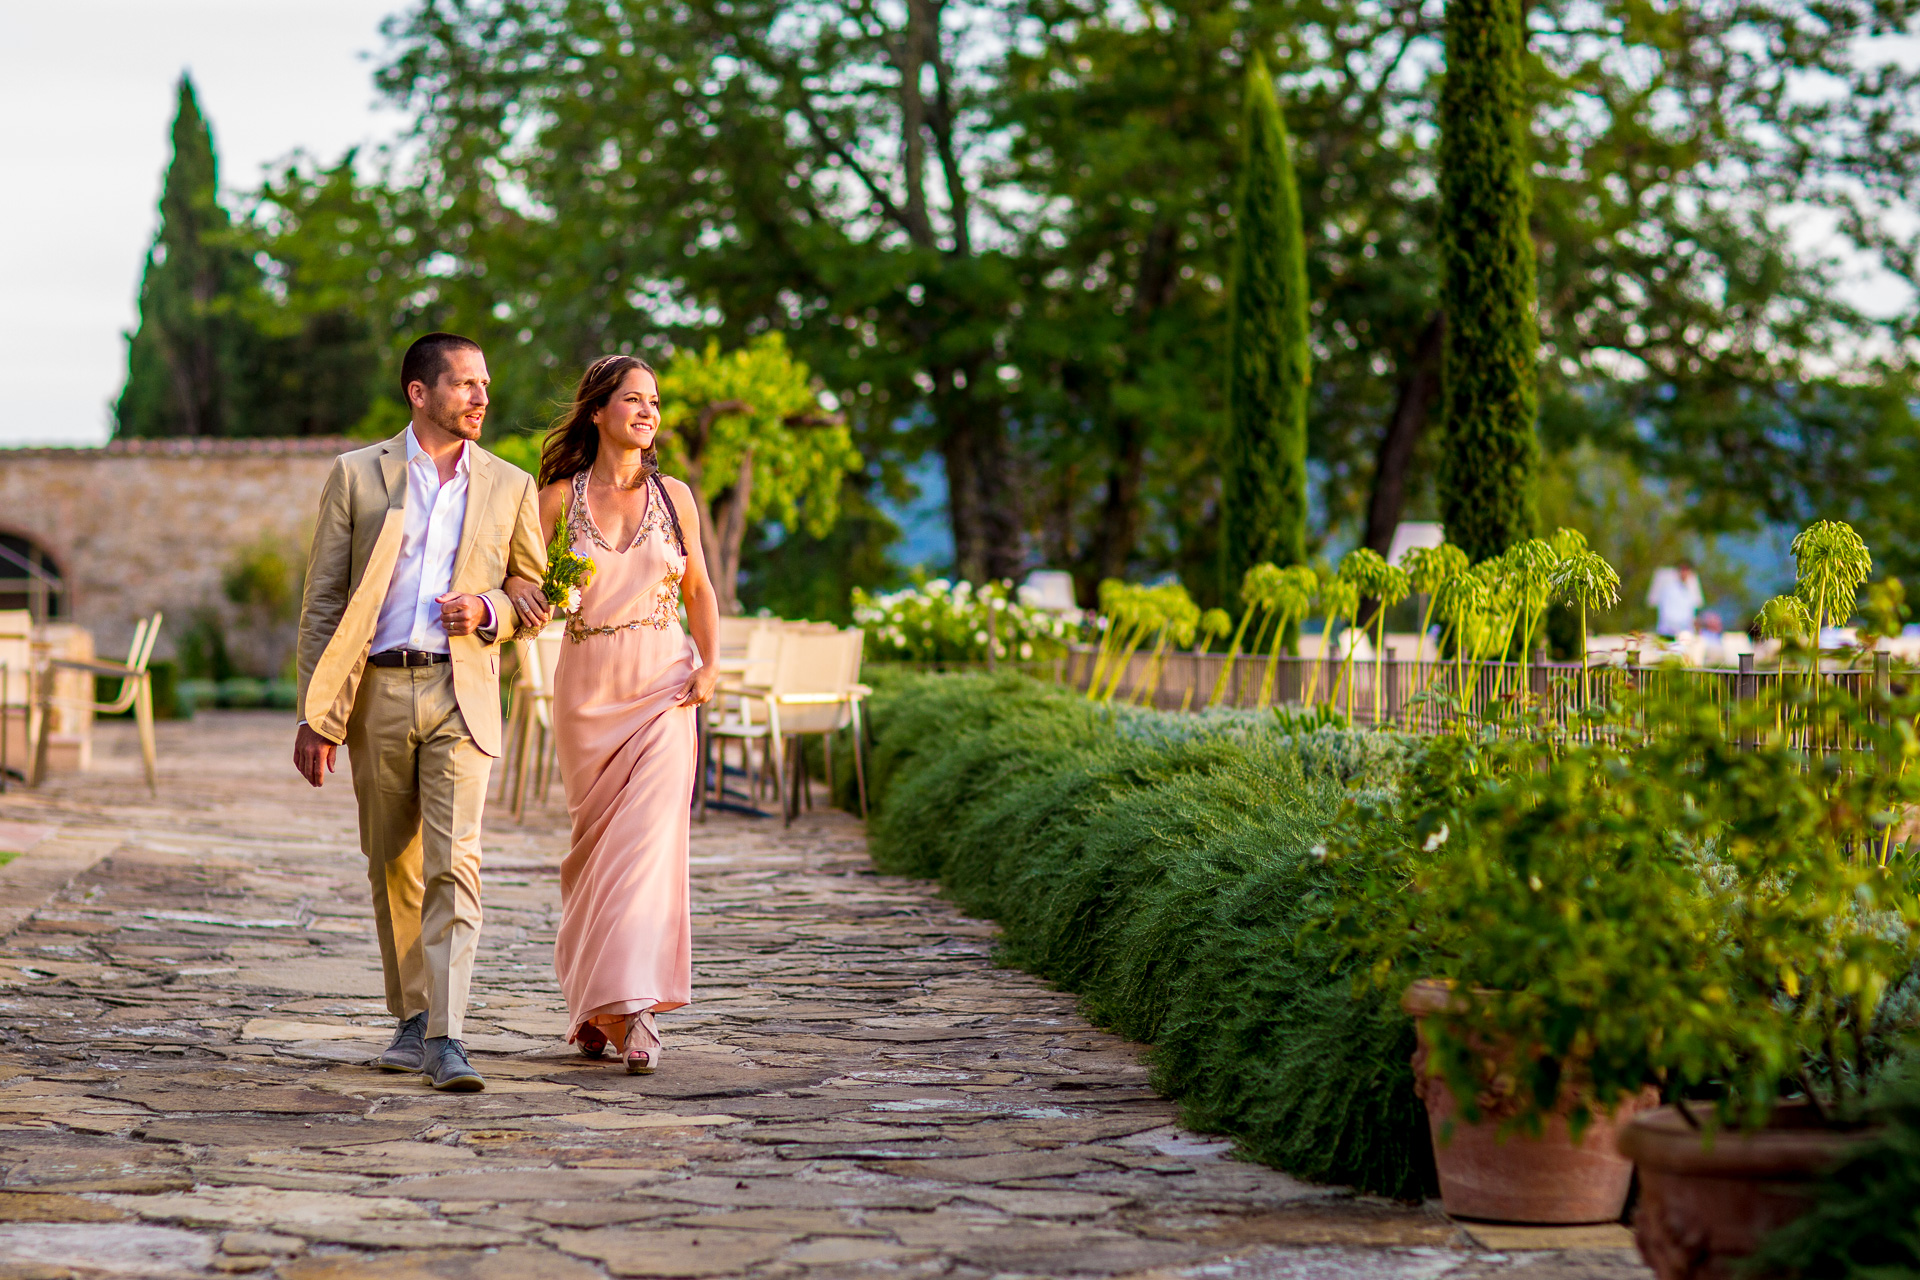 Weddings in the Heart of Tuscany at Casali Di Casole | arms linked and looking utterly relaxed